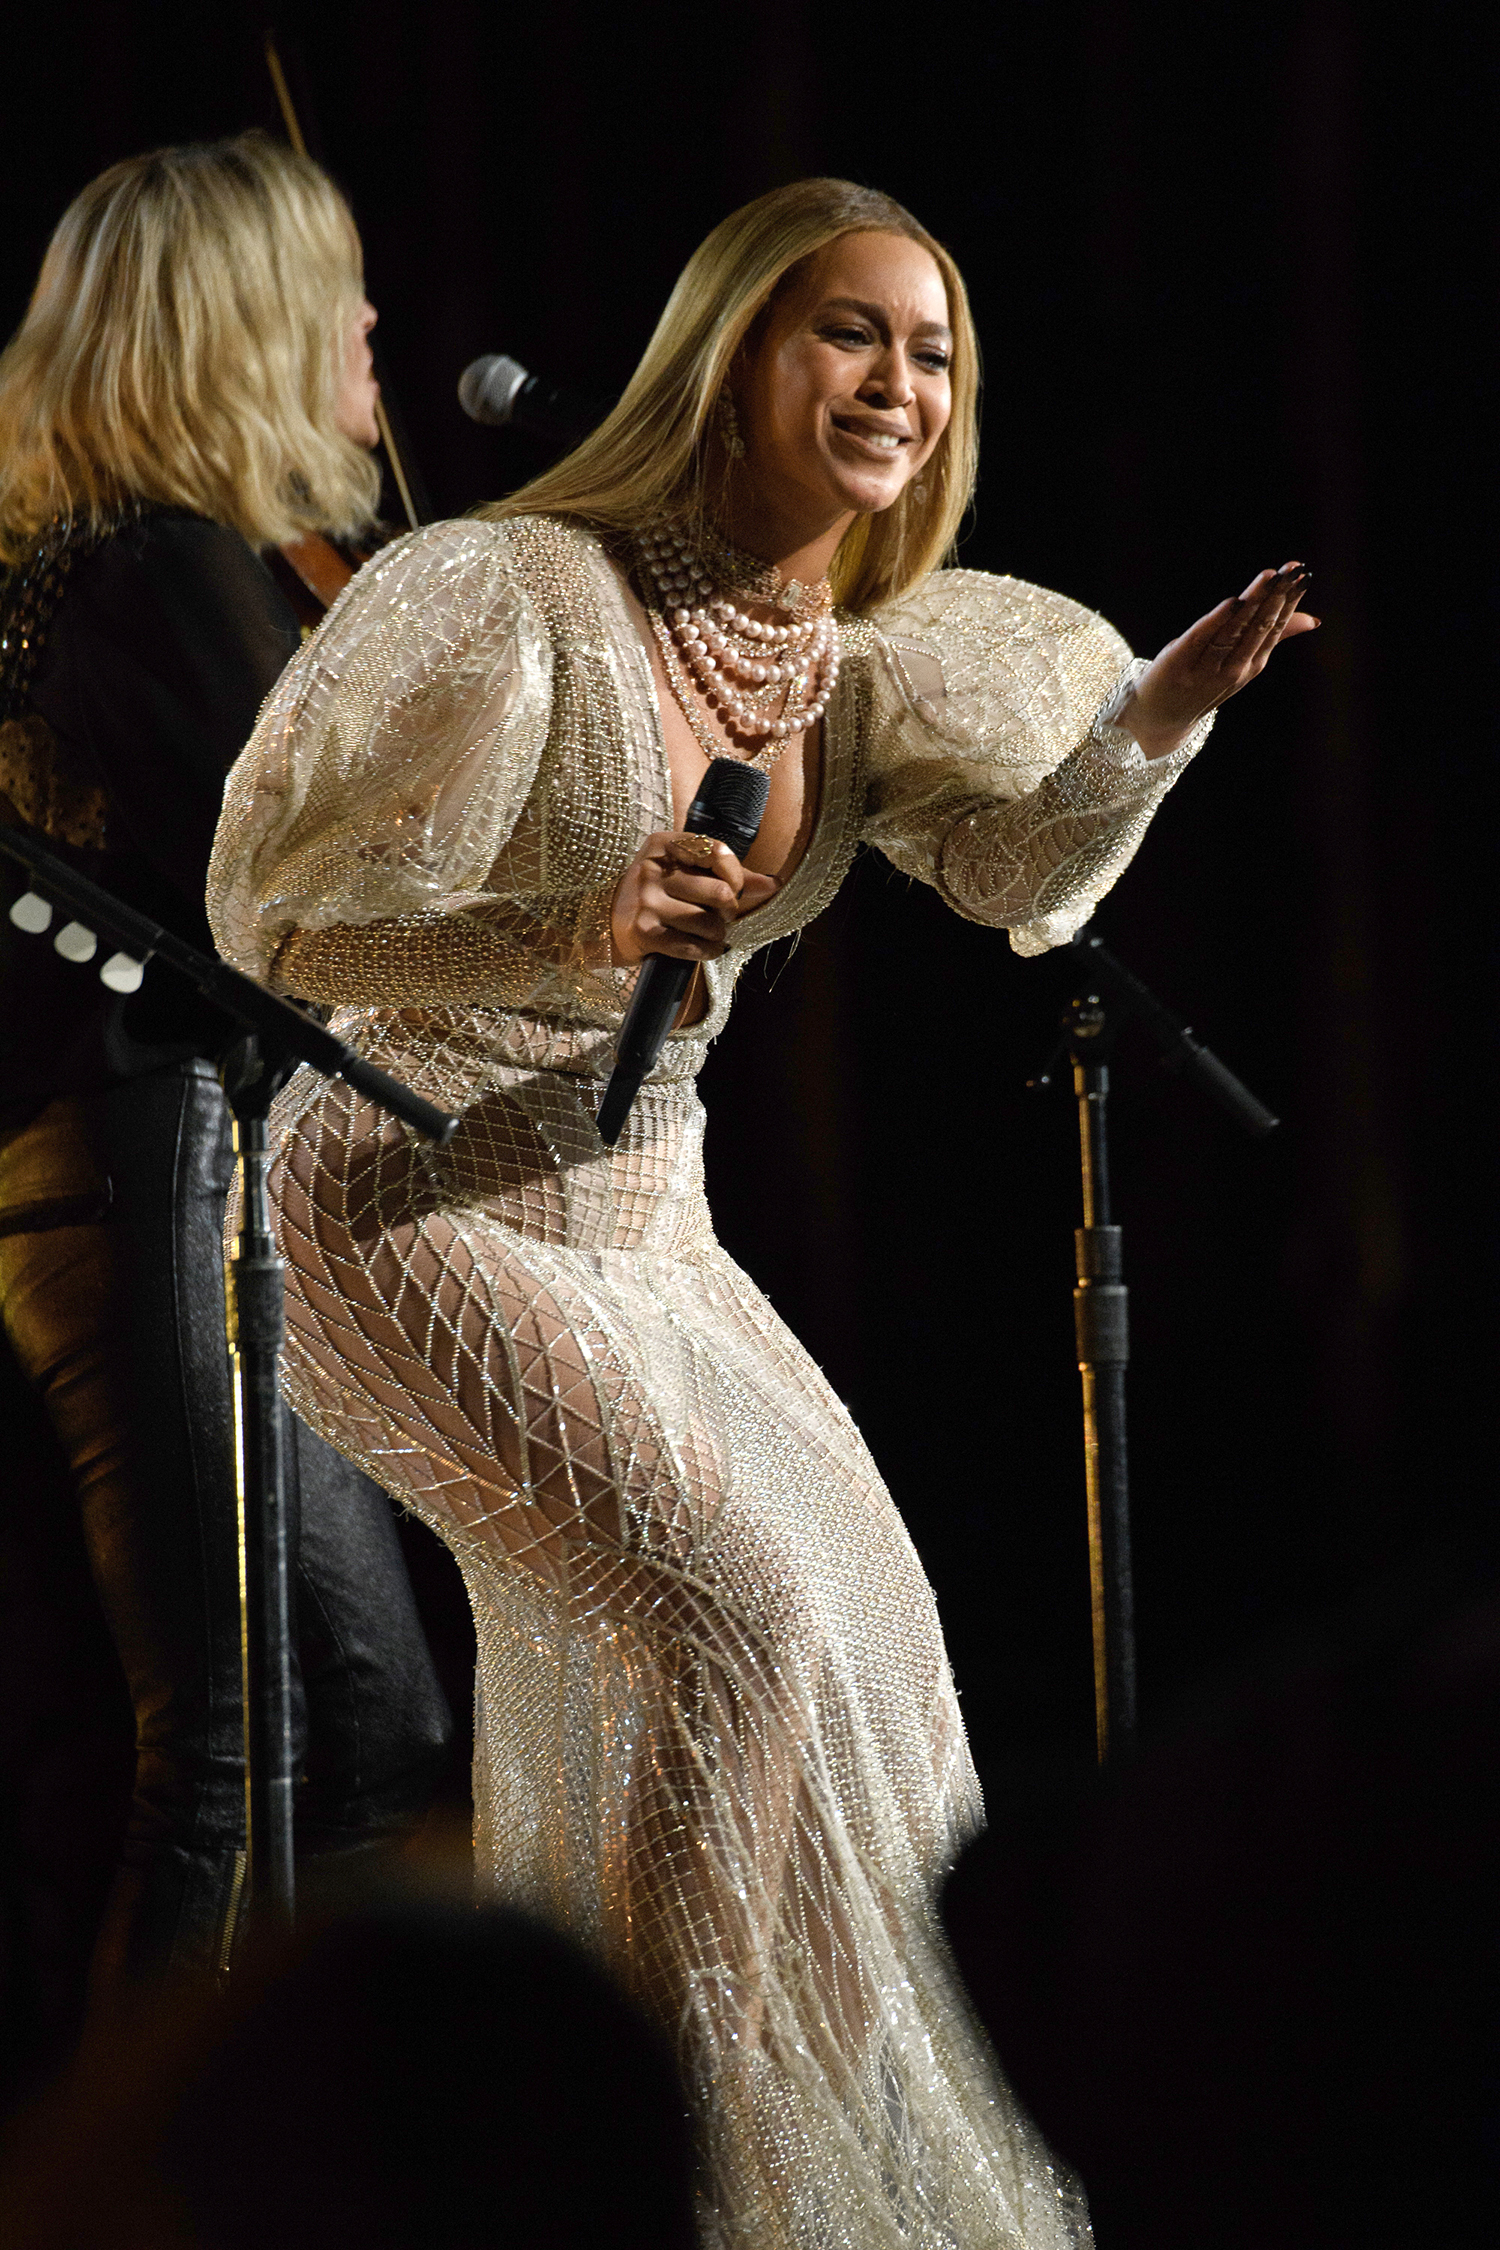 Beyonce's Country Song 'Daddy Lessons' Rejected by Grammys